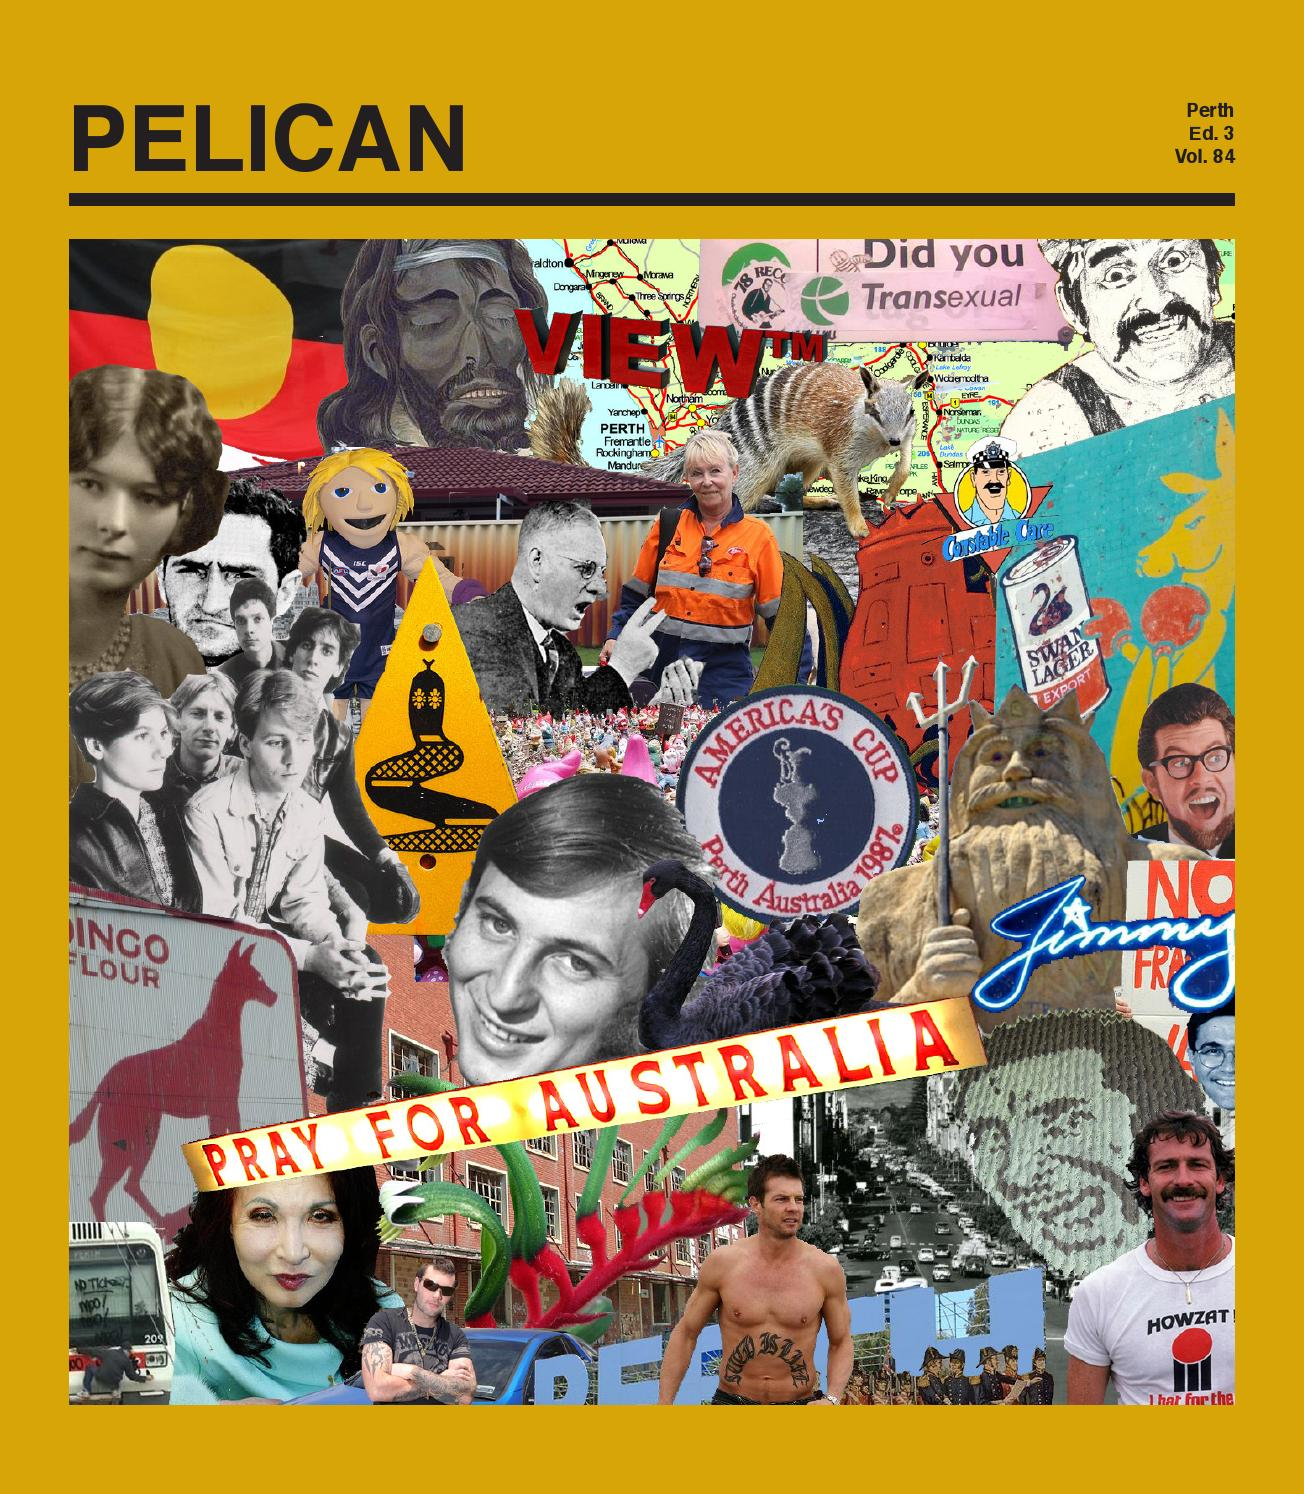 Pelican Edition 3 Volume 84 by UWA Student Guild - issuu